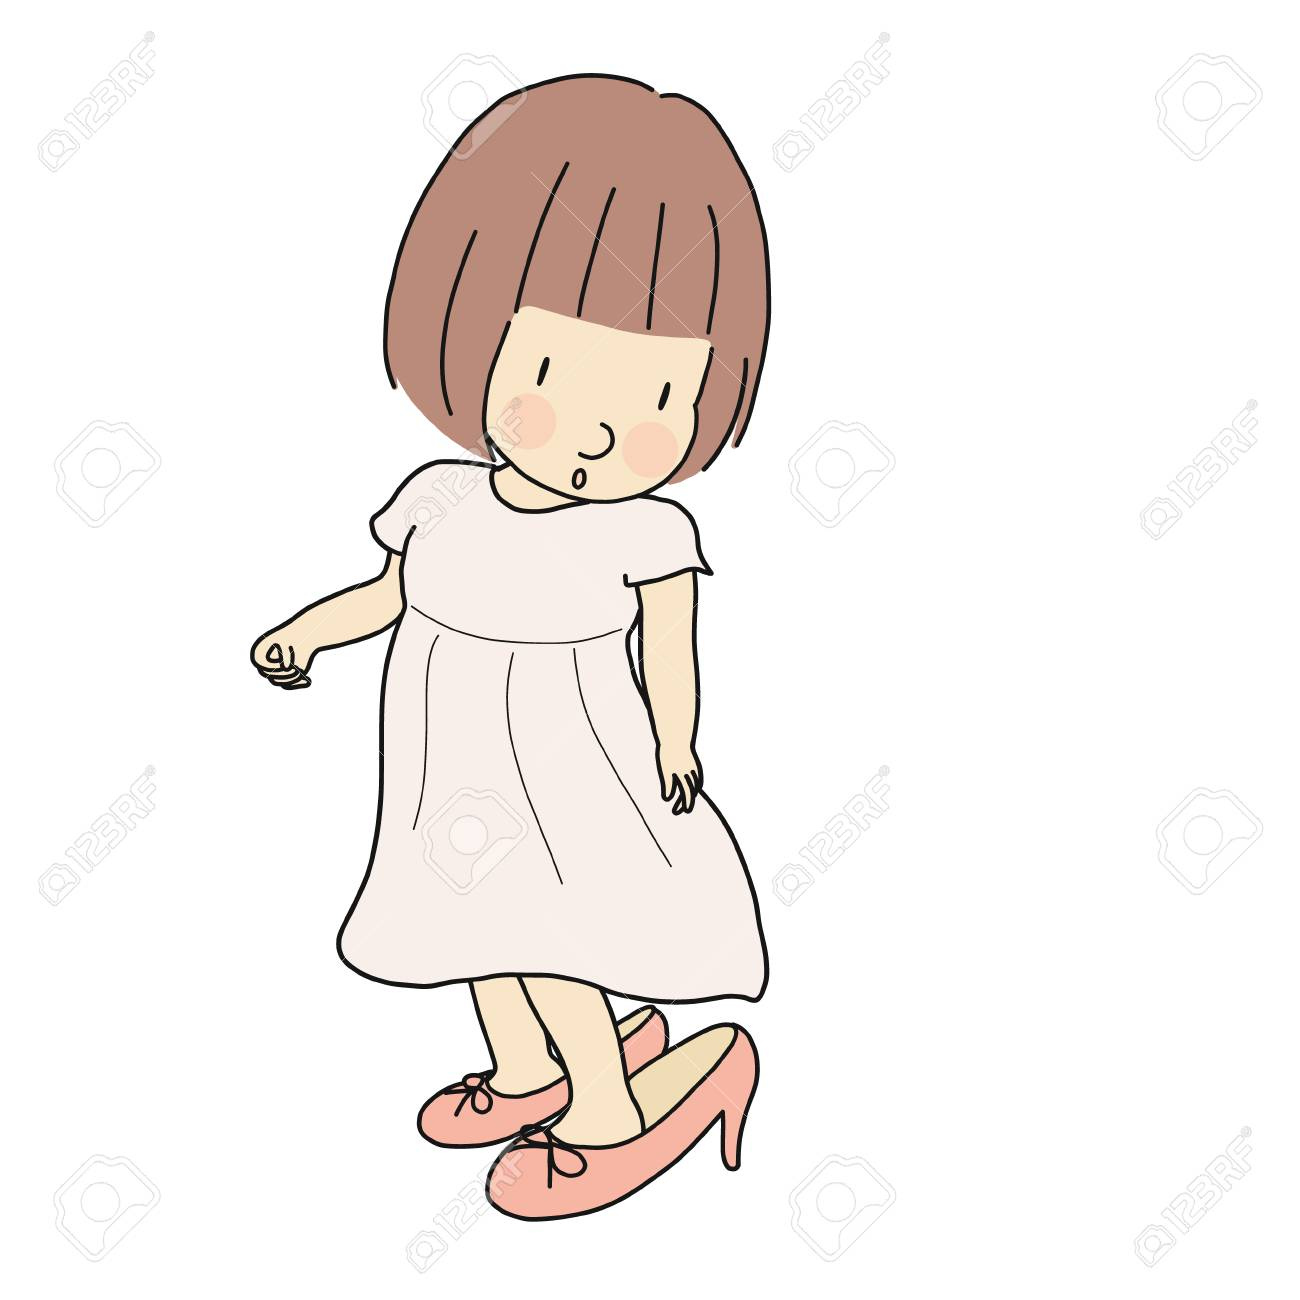 8663527ca15e4 Vector - Vector illustration of little kid girl trying to put on mother's  high heel shoes. Happy children day, child playing, funny concept.